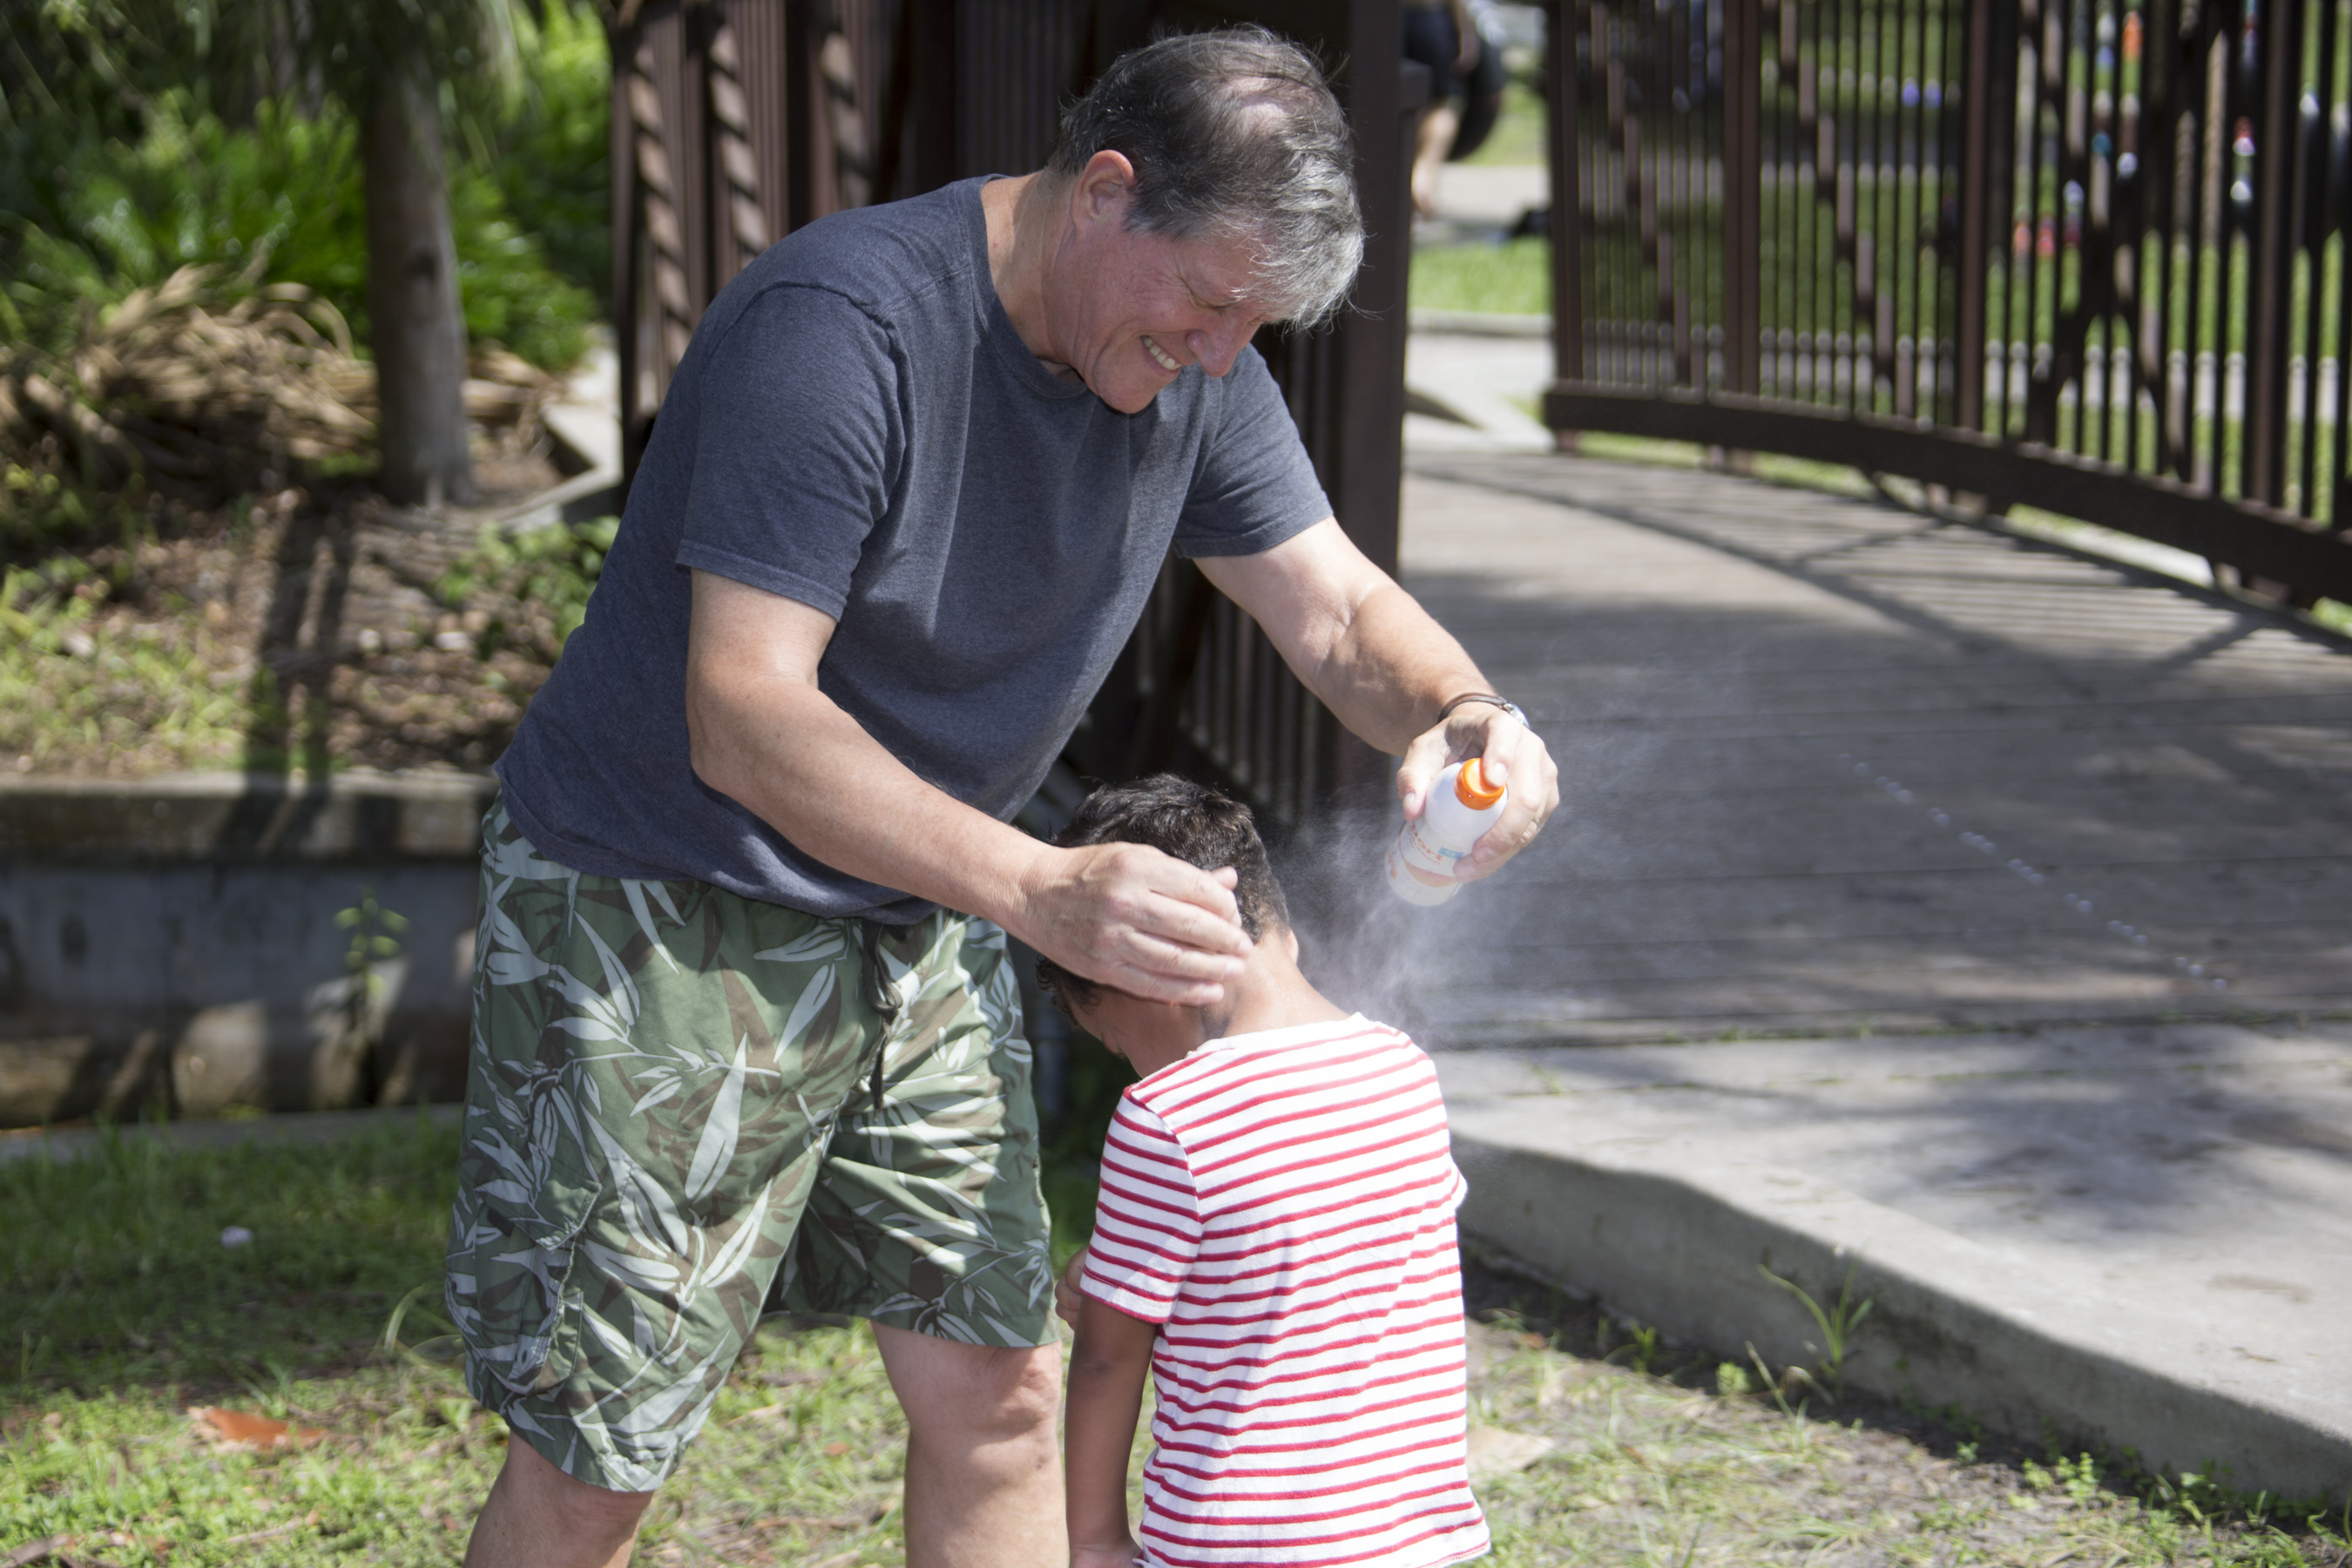 A father sprays his son with sunscreen while visiting a park